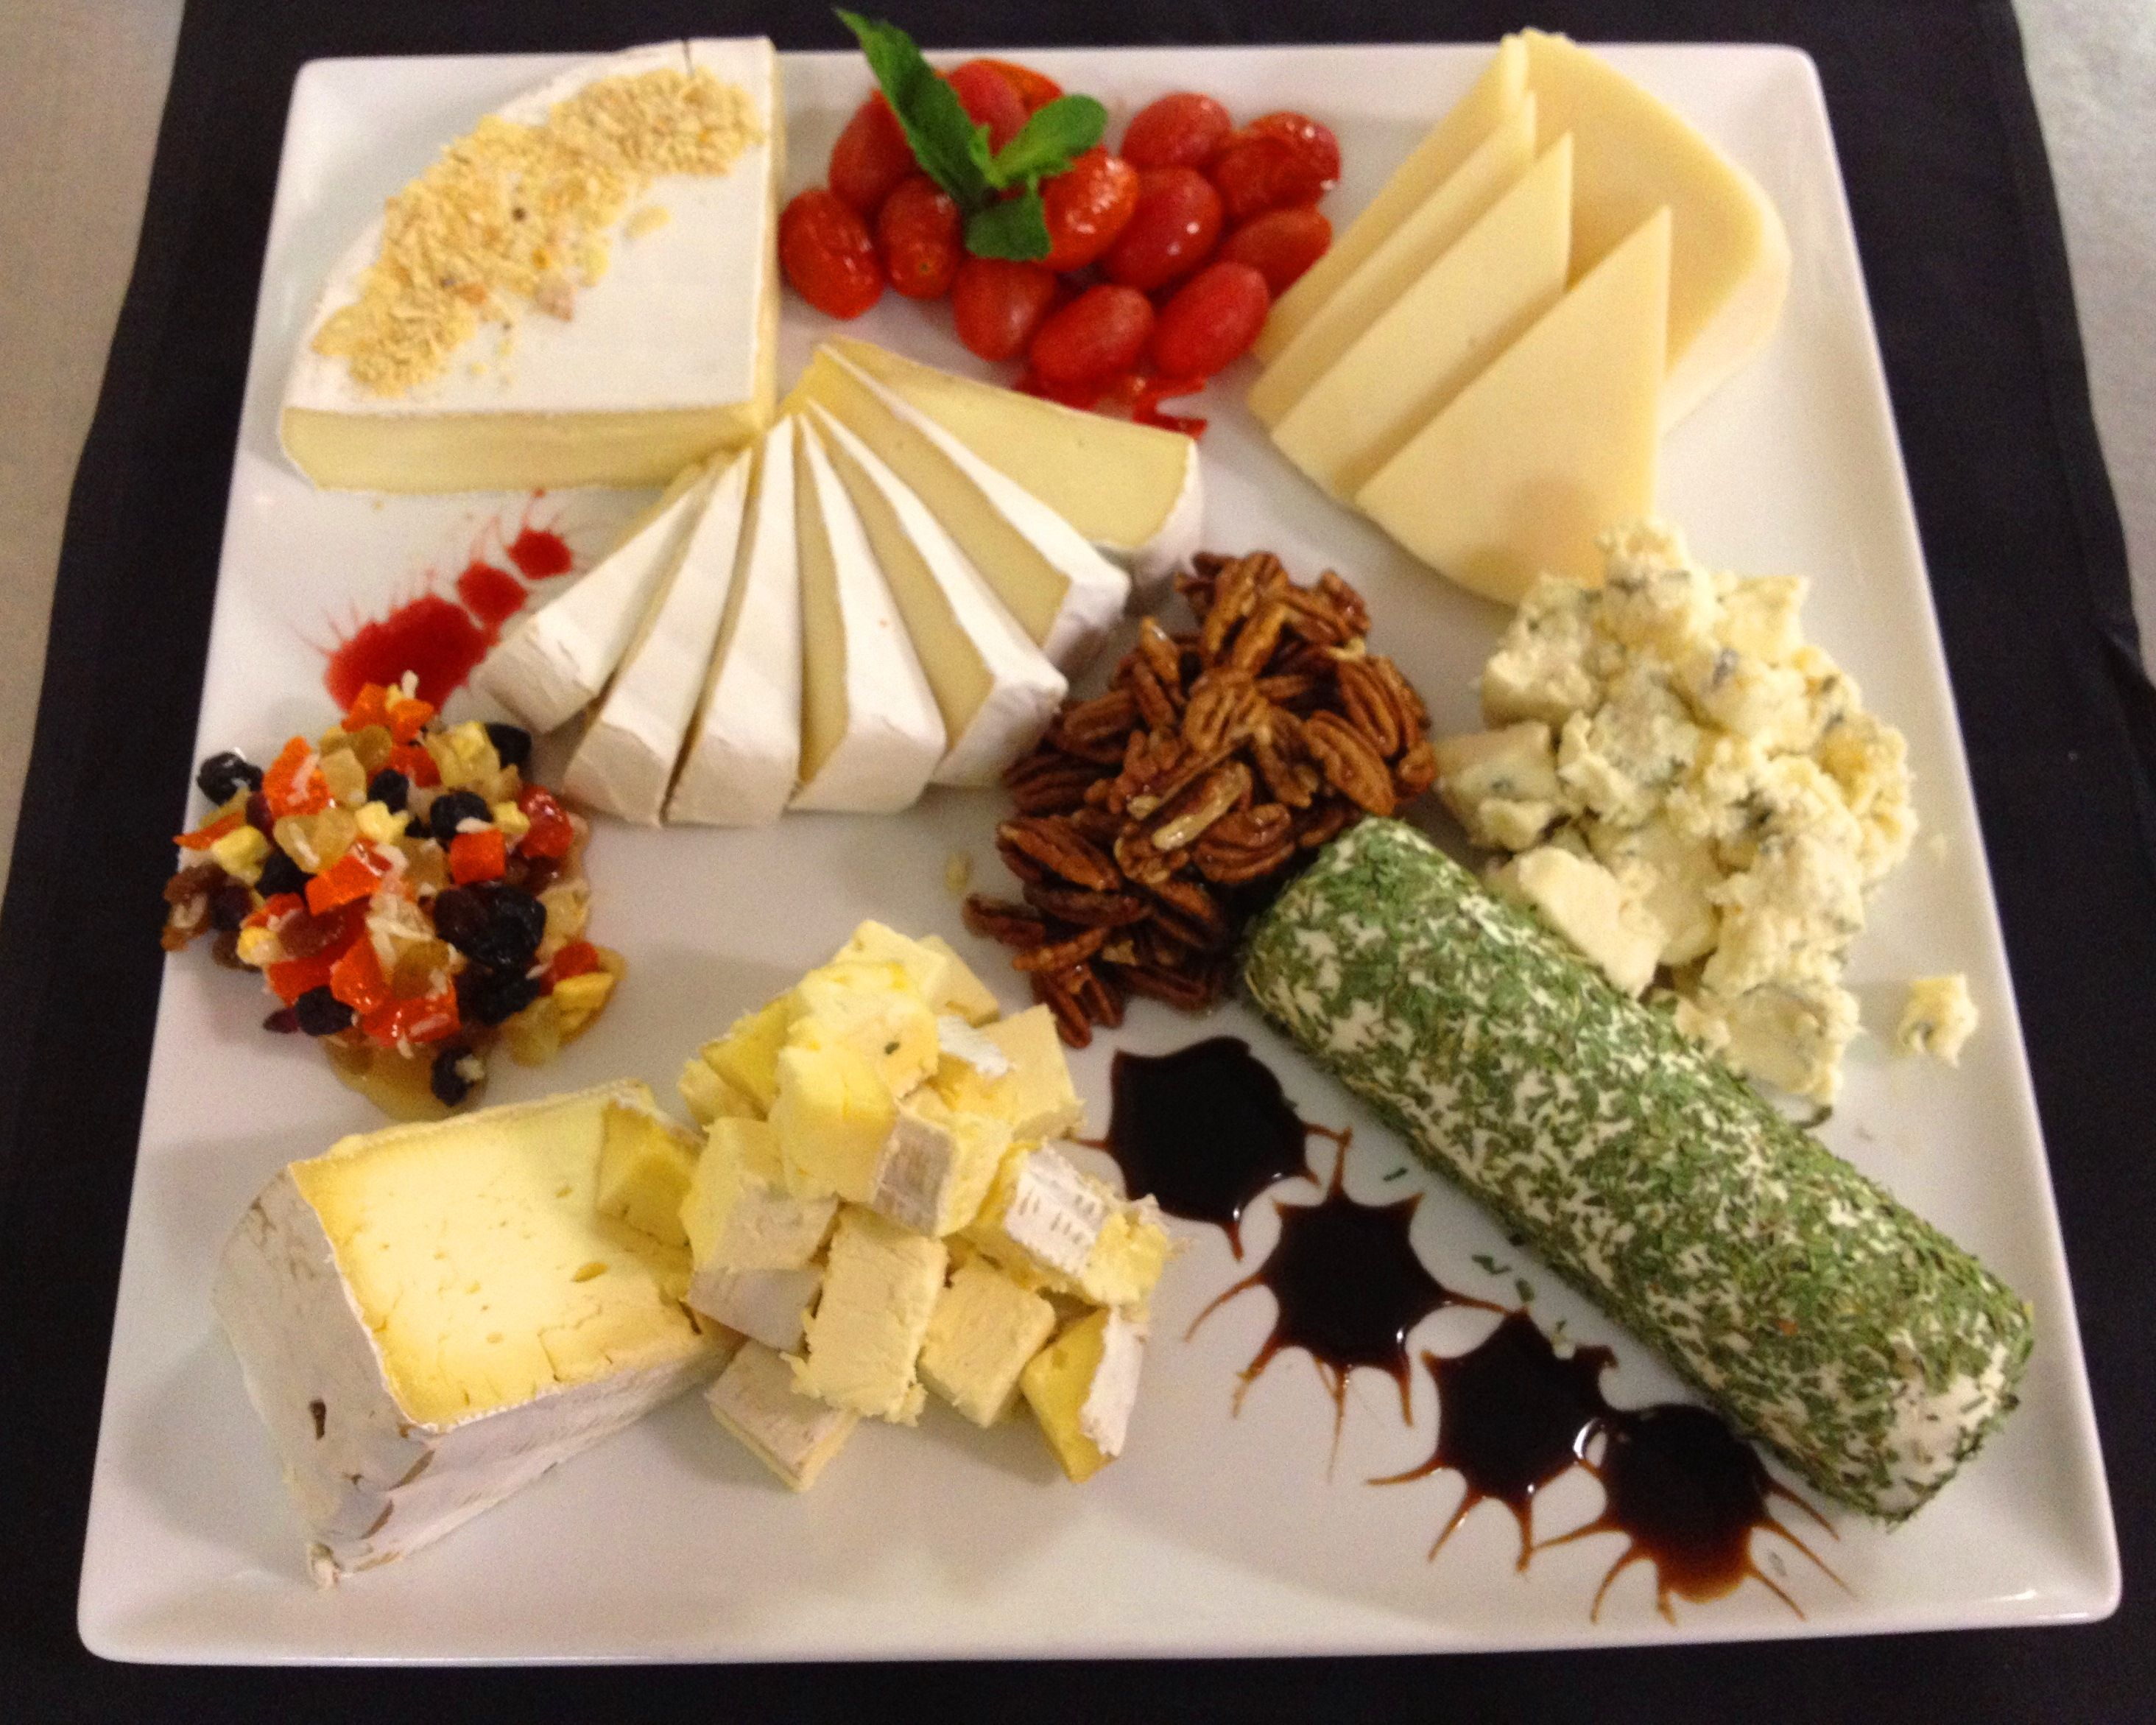 Cheese Platter - made with candied pecans brie bel paese may tag blue & Cheese Platter - made with candied pecans brie bel paese may tag ...